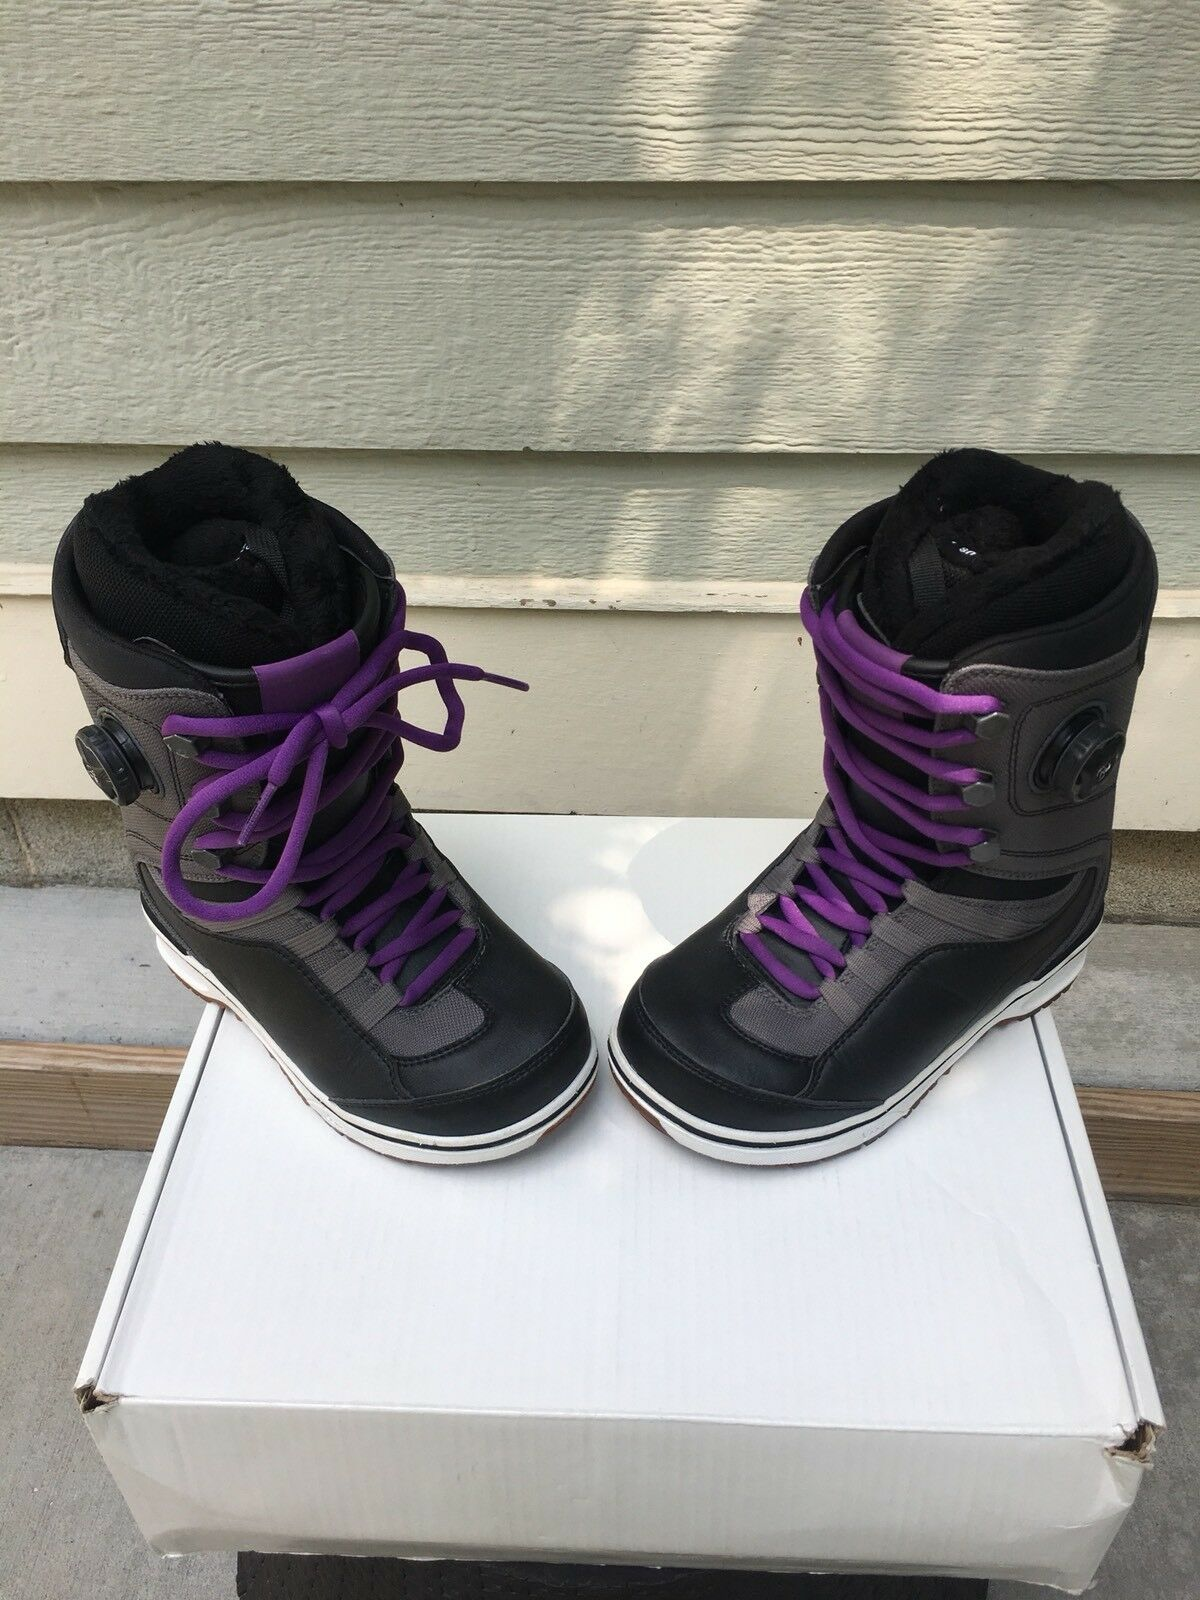 Vans Ferra Women's  Size 7 Boa Snowboard Boots   NEW  clearance up to 70%